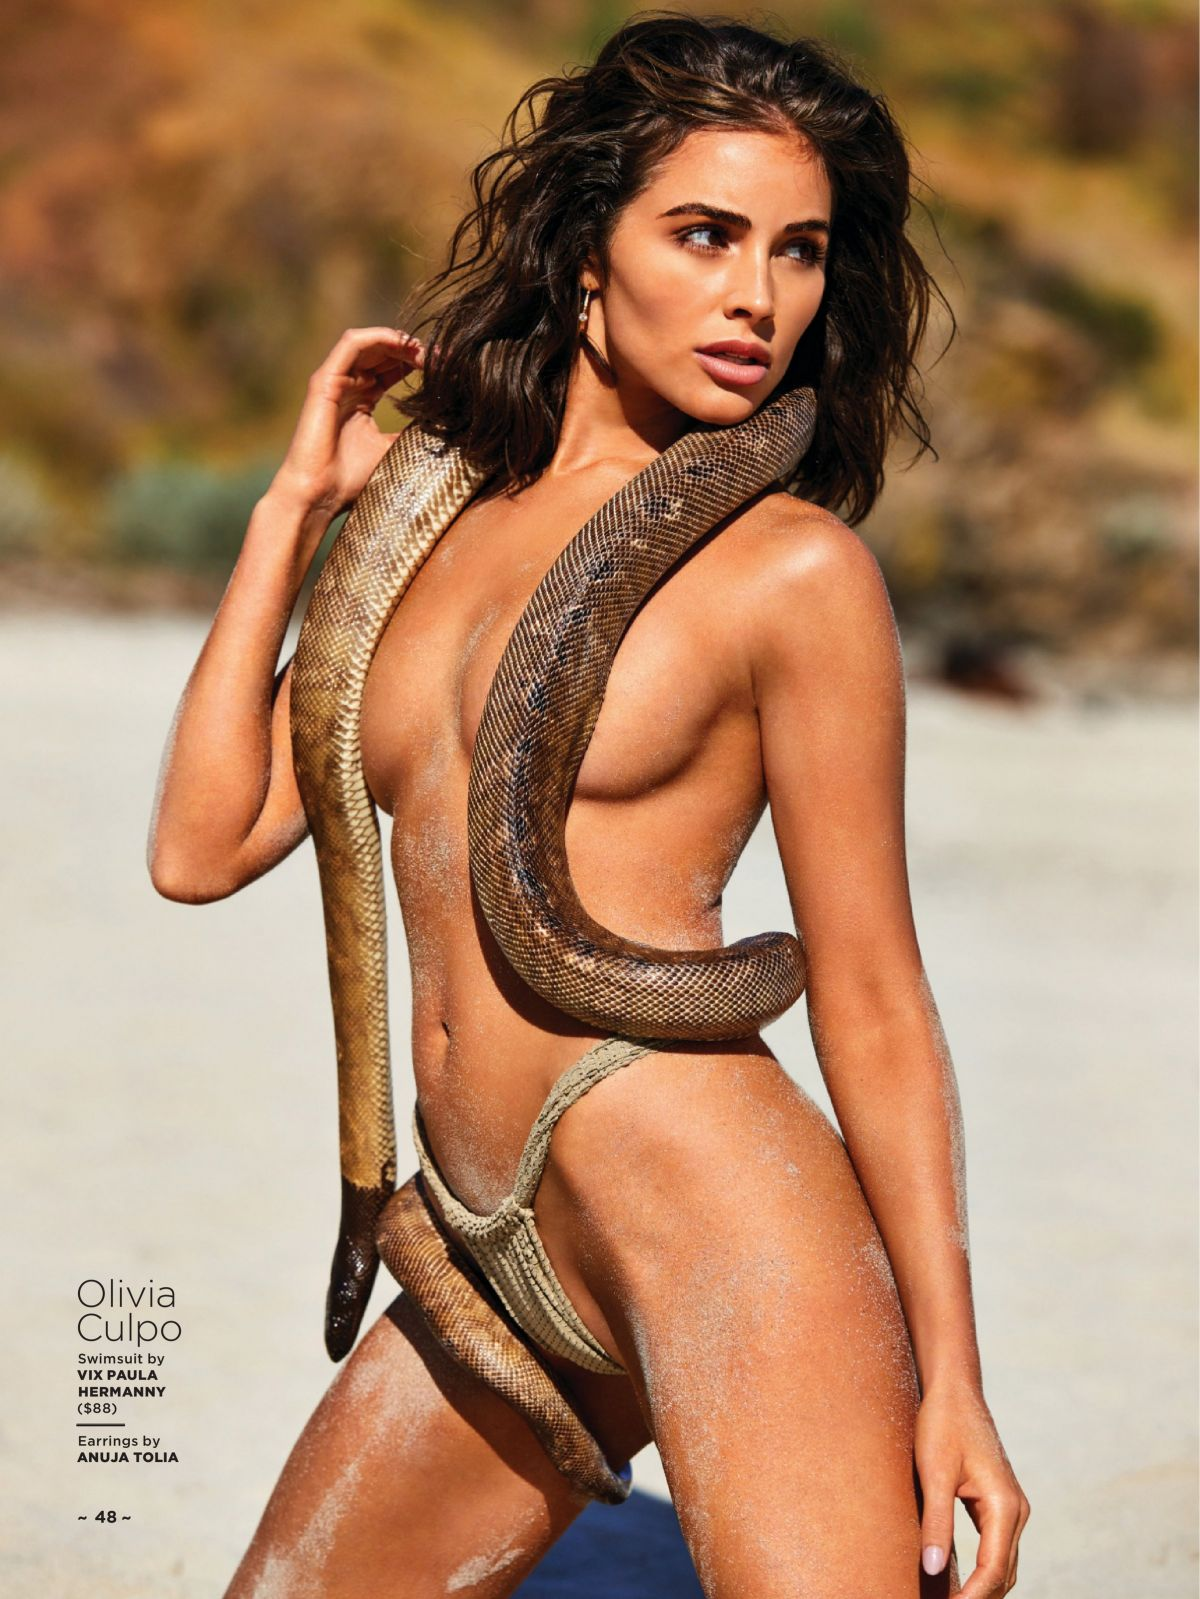 illustrated sports swimsuit swim olivia issue culpo banks edition latest kostek camille hawtcelebs tyra morgan alex si check